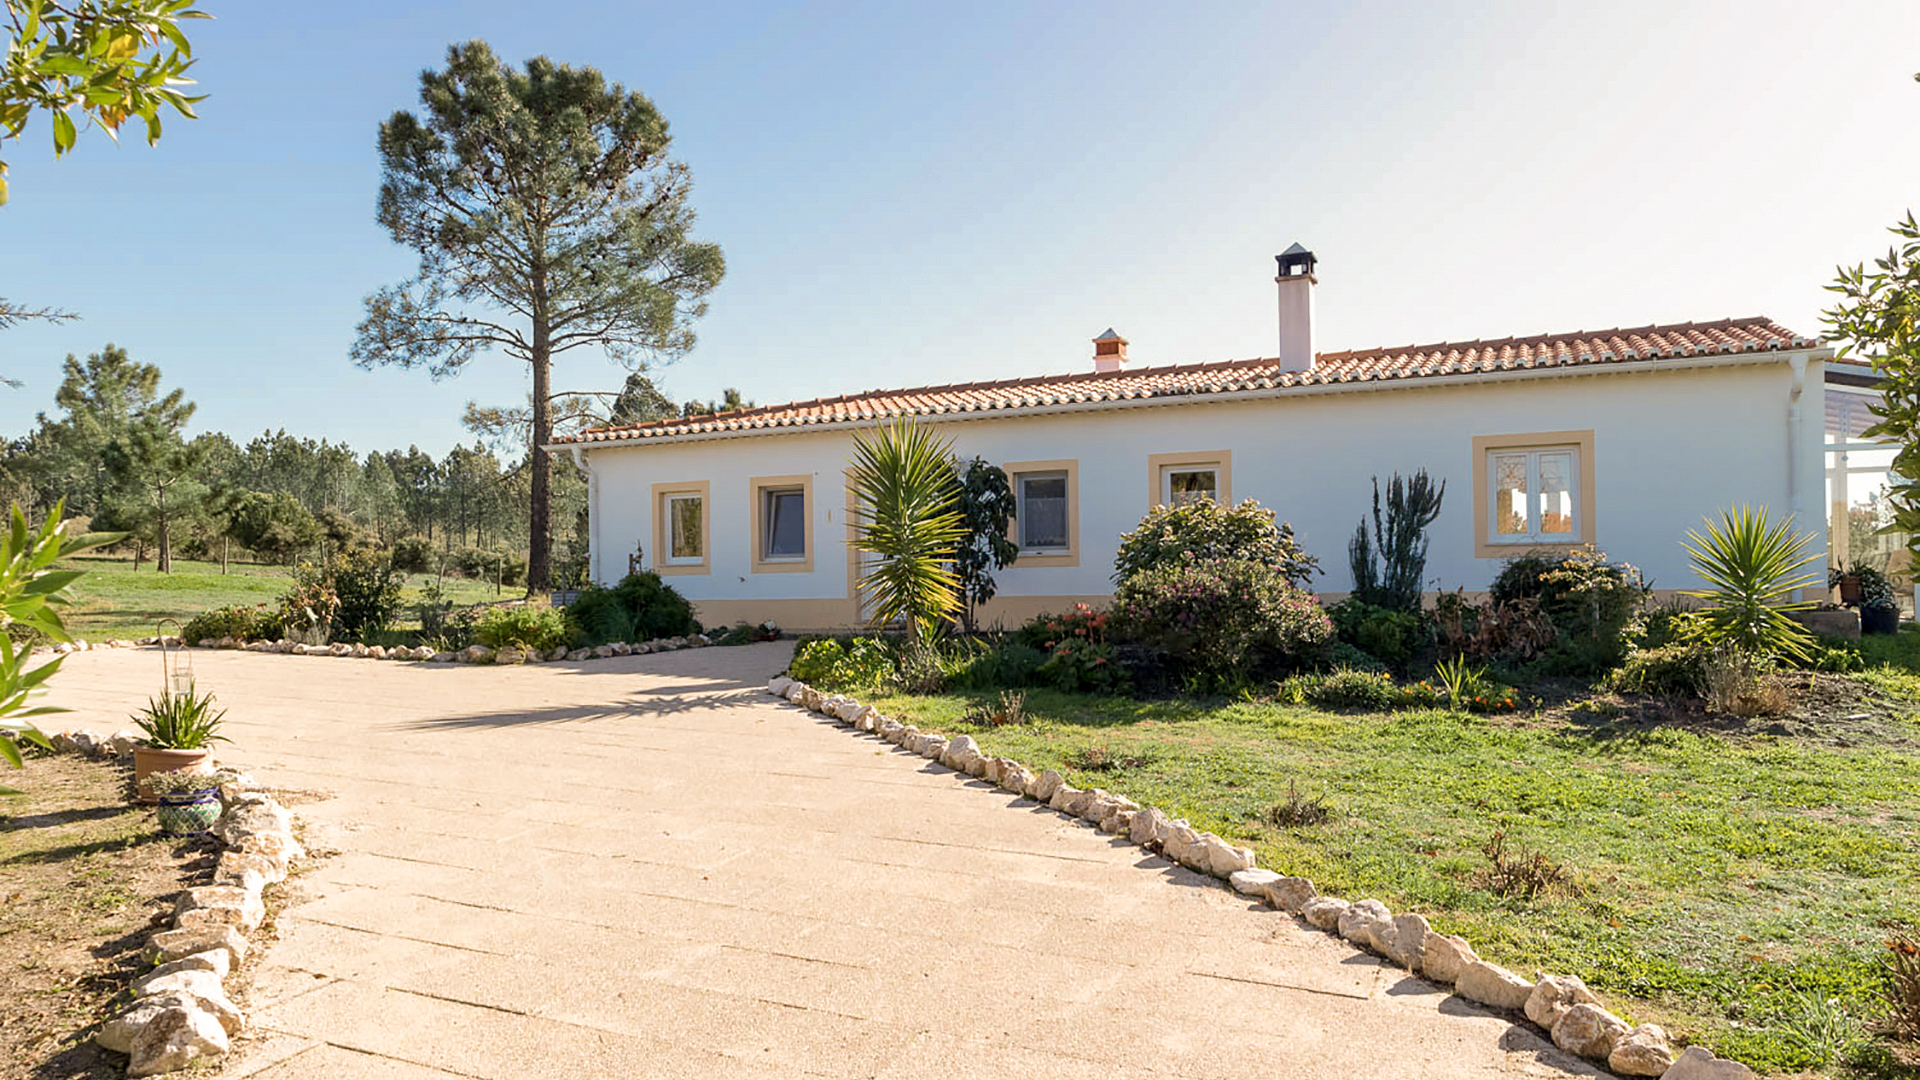 2 Bedroom country house + guesthouse, stables and paddocks, Near Rogil / Aljezur, West Coast | LG987 A two bedroom country house with guesthouse, stables and paddocks, on a 3.5 hectare plot near to Rogil, Aljezur within the South west Alentejano Natural Parque. The ideal property for nature lovers with potential for flexible accommodation if desired. A comfortable home for permanent residence or holidays due to its proximity to some wonderful beaches.